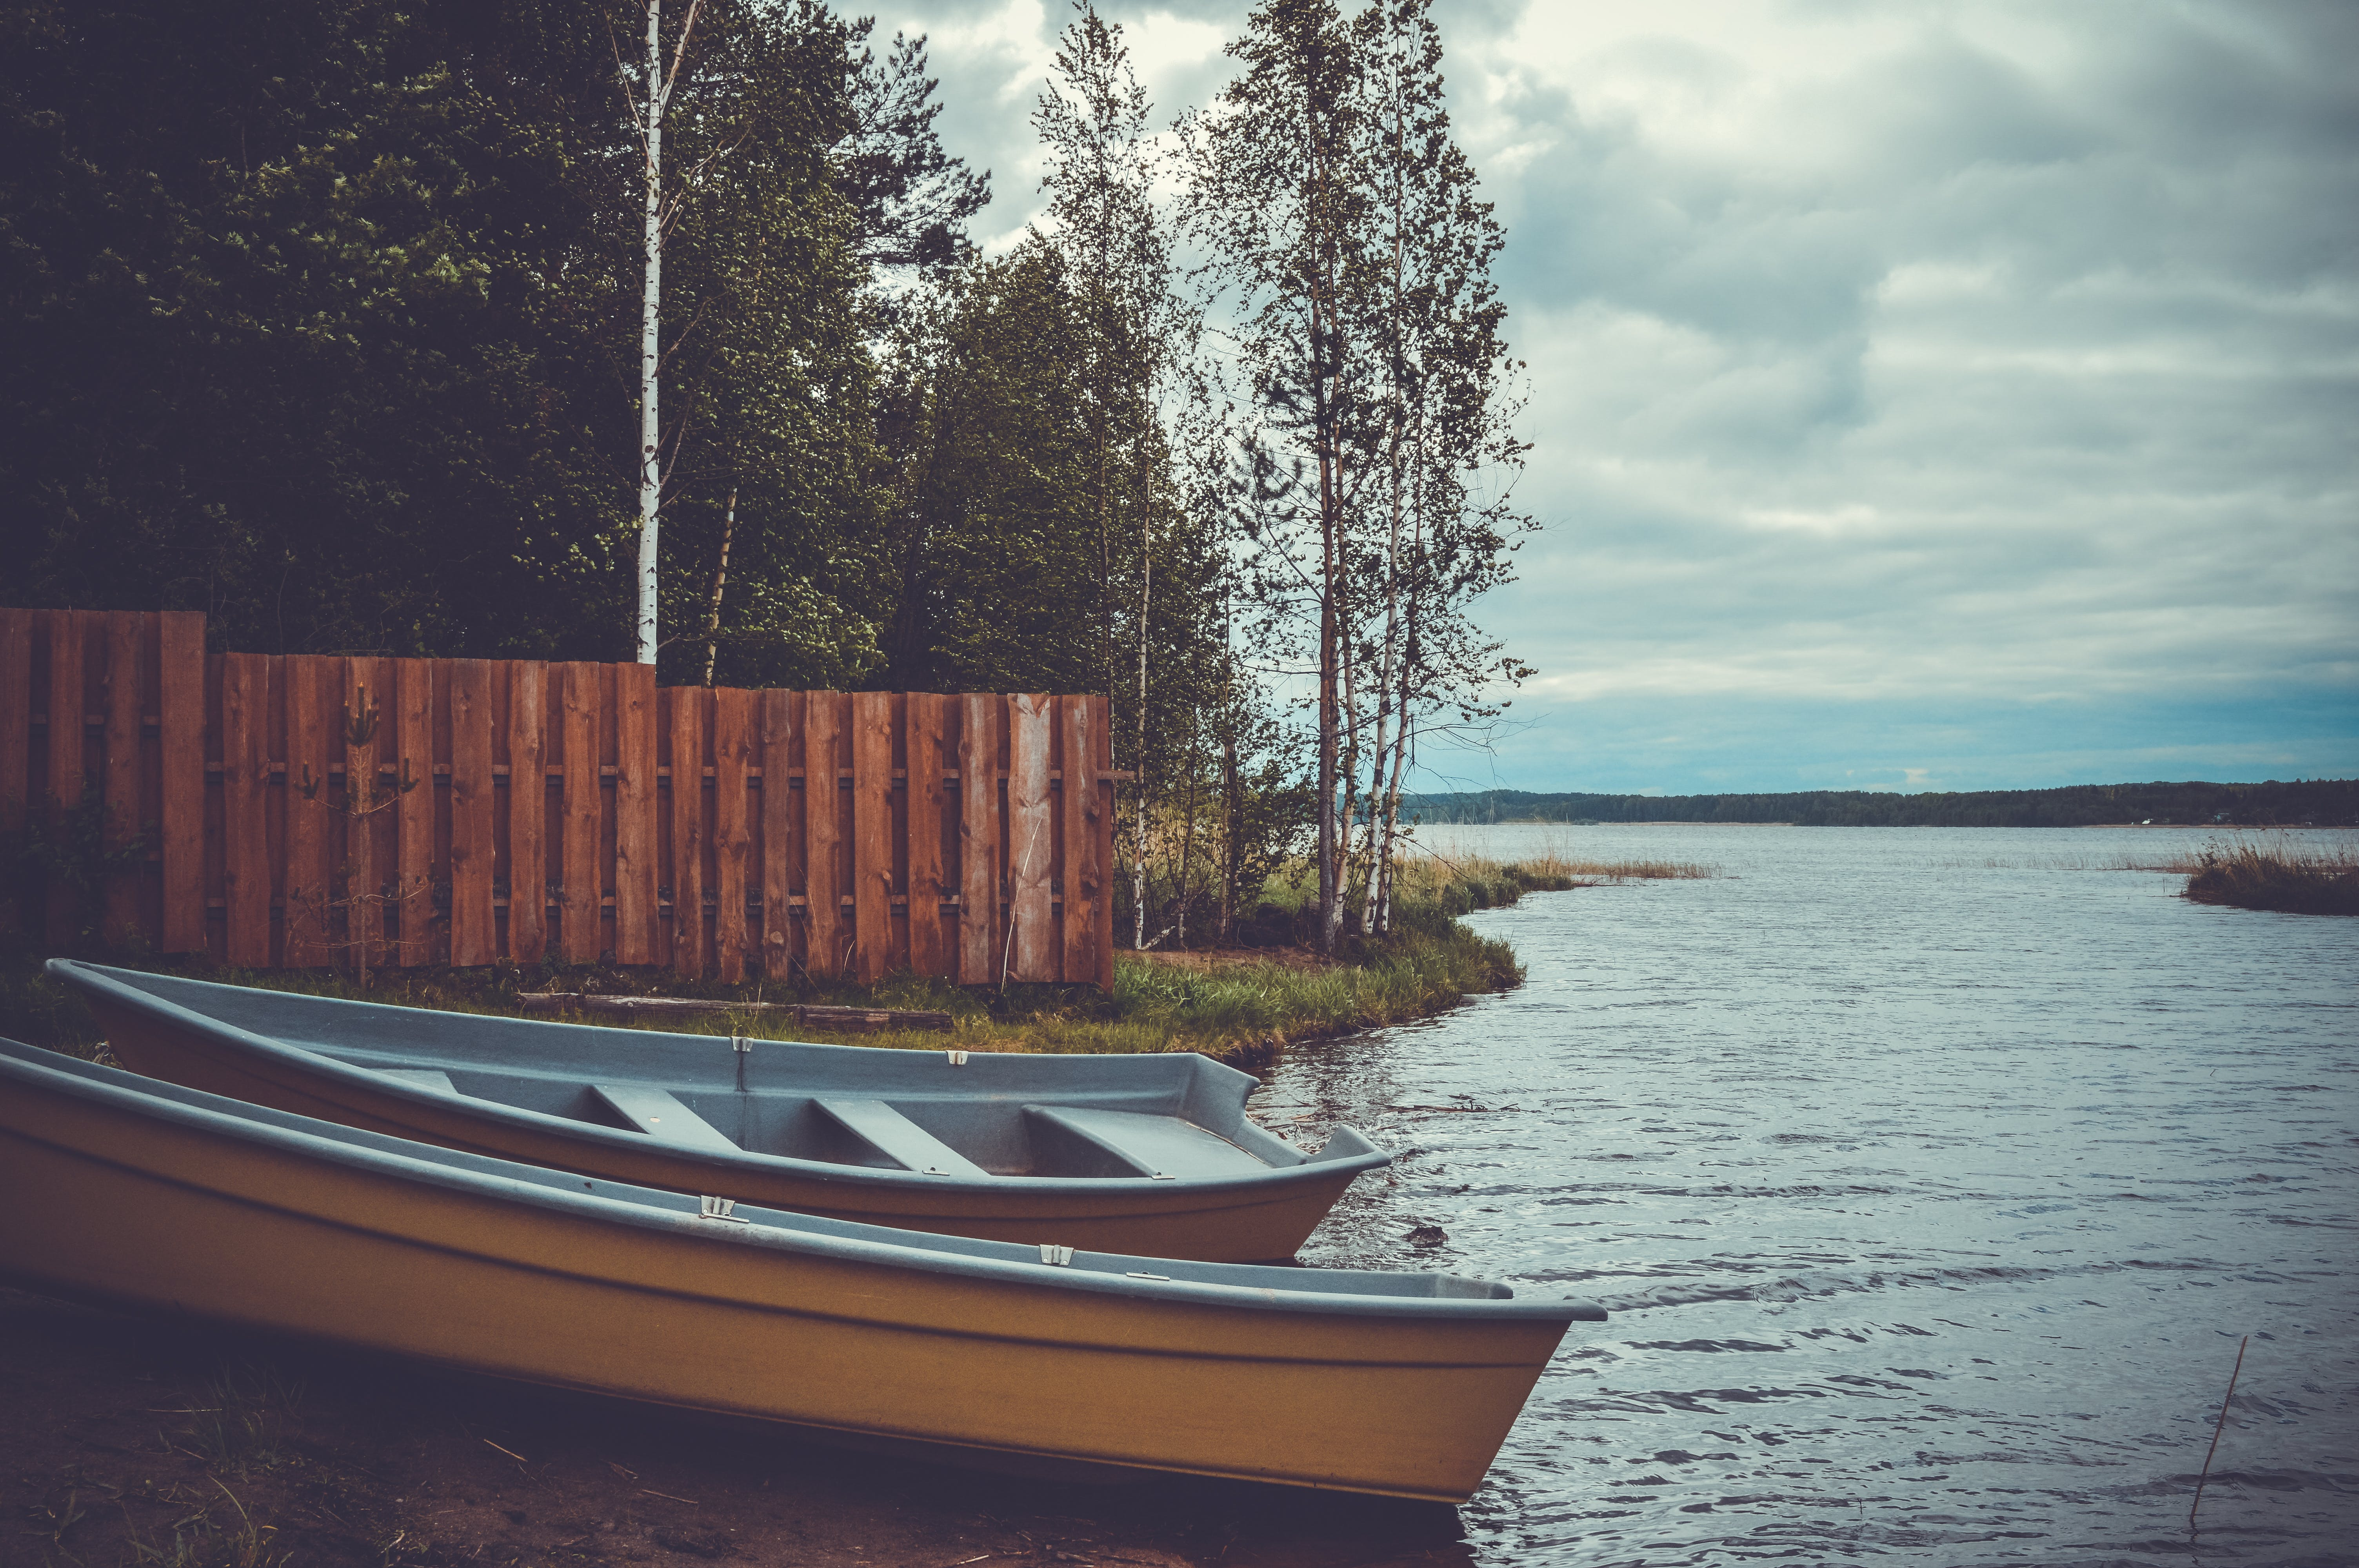 Two Blue and Brown Boats Near Trees